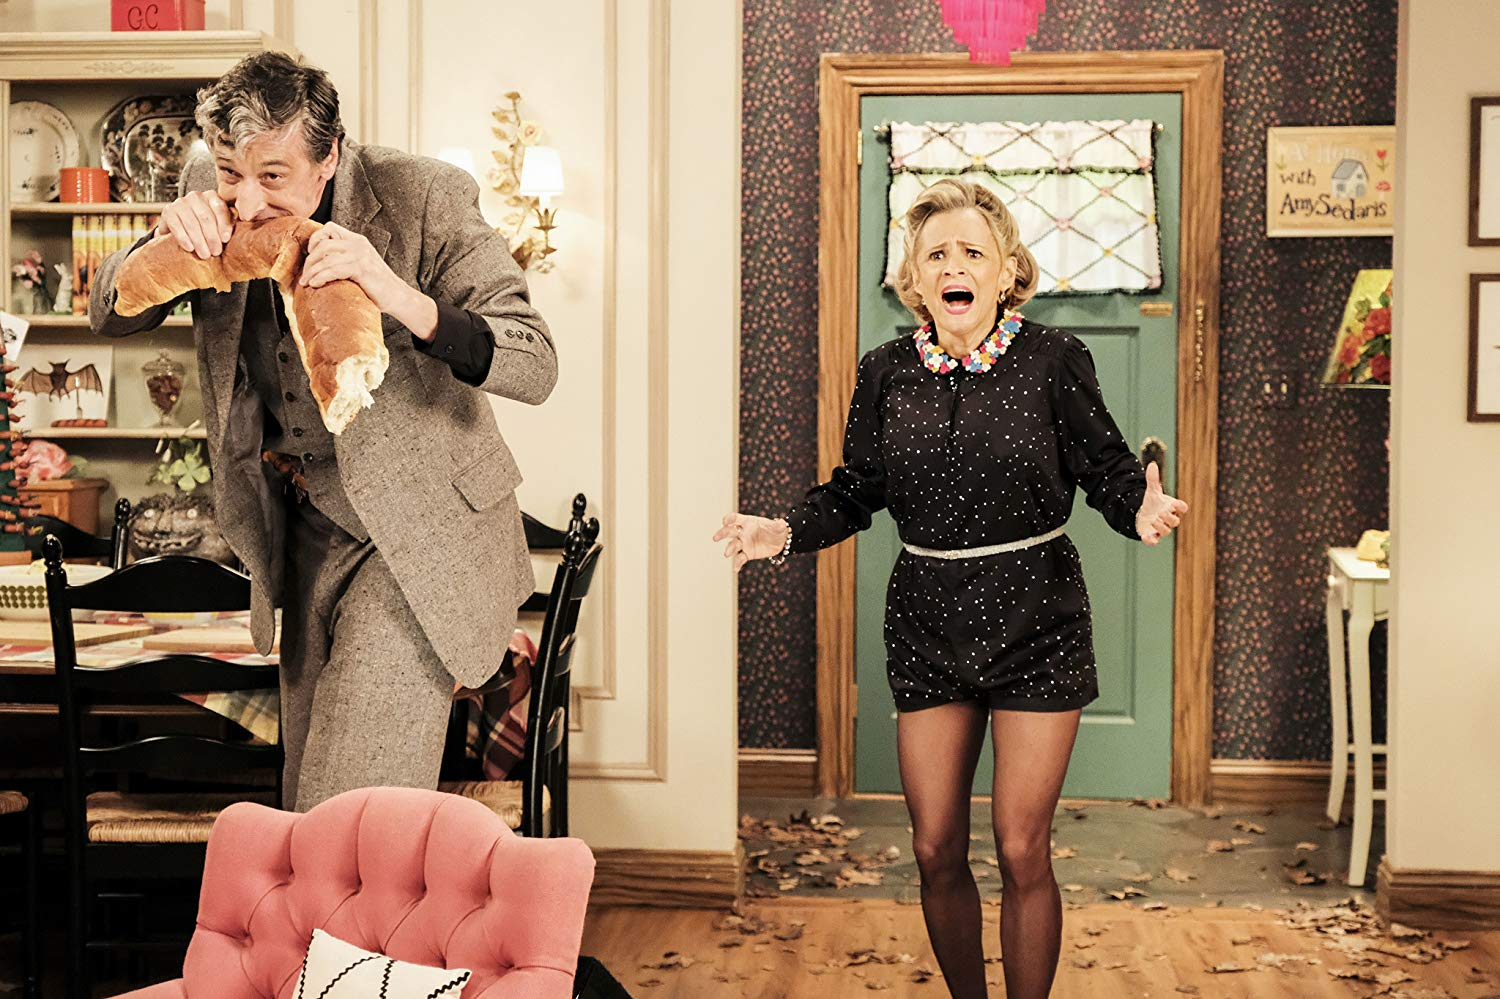 At Home with Amy Sedaris - Season 2